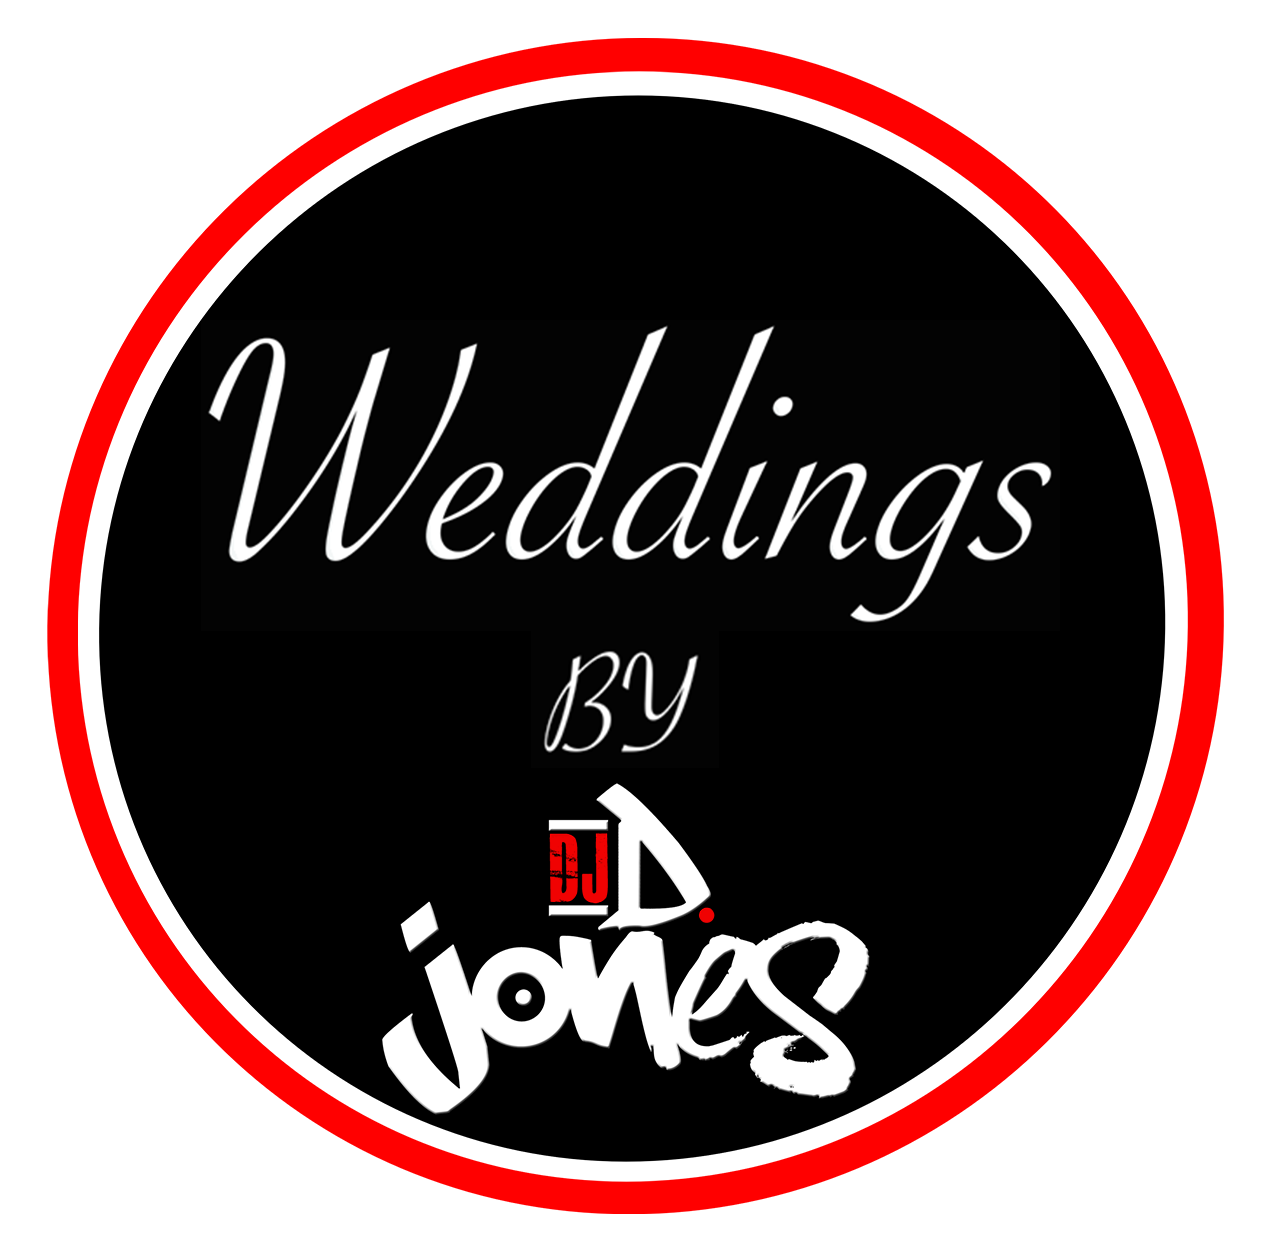 Weddings By D. Jones